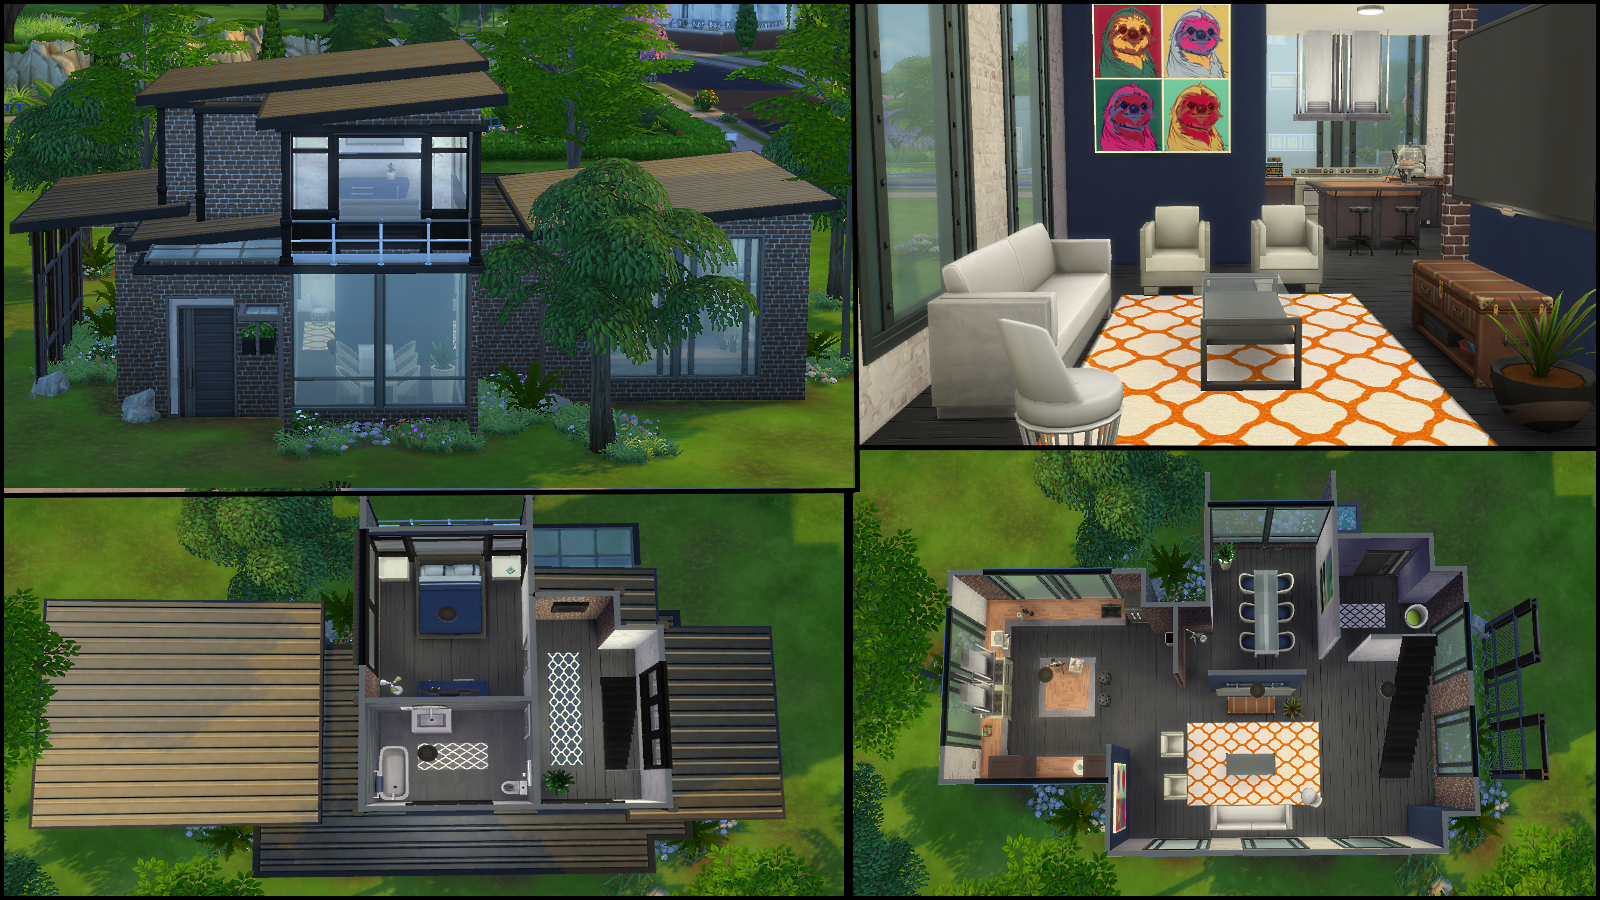 2 industrial house by samibenaddou5021 68796 - Sims 4 Home Design 2